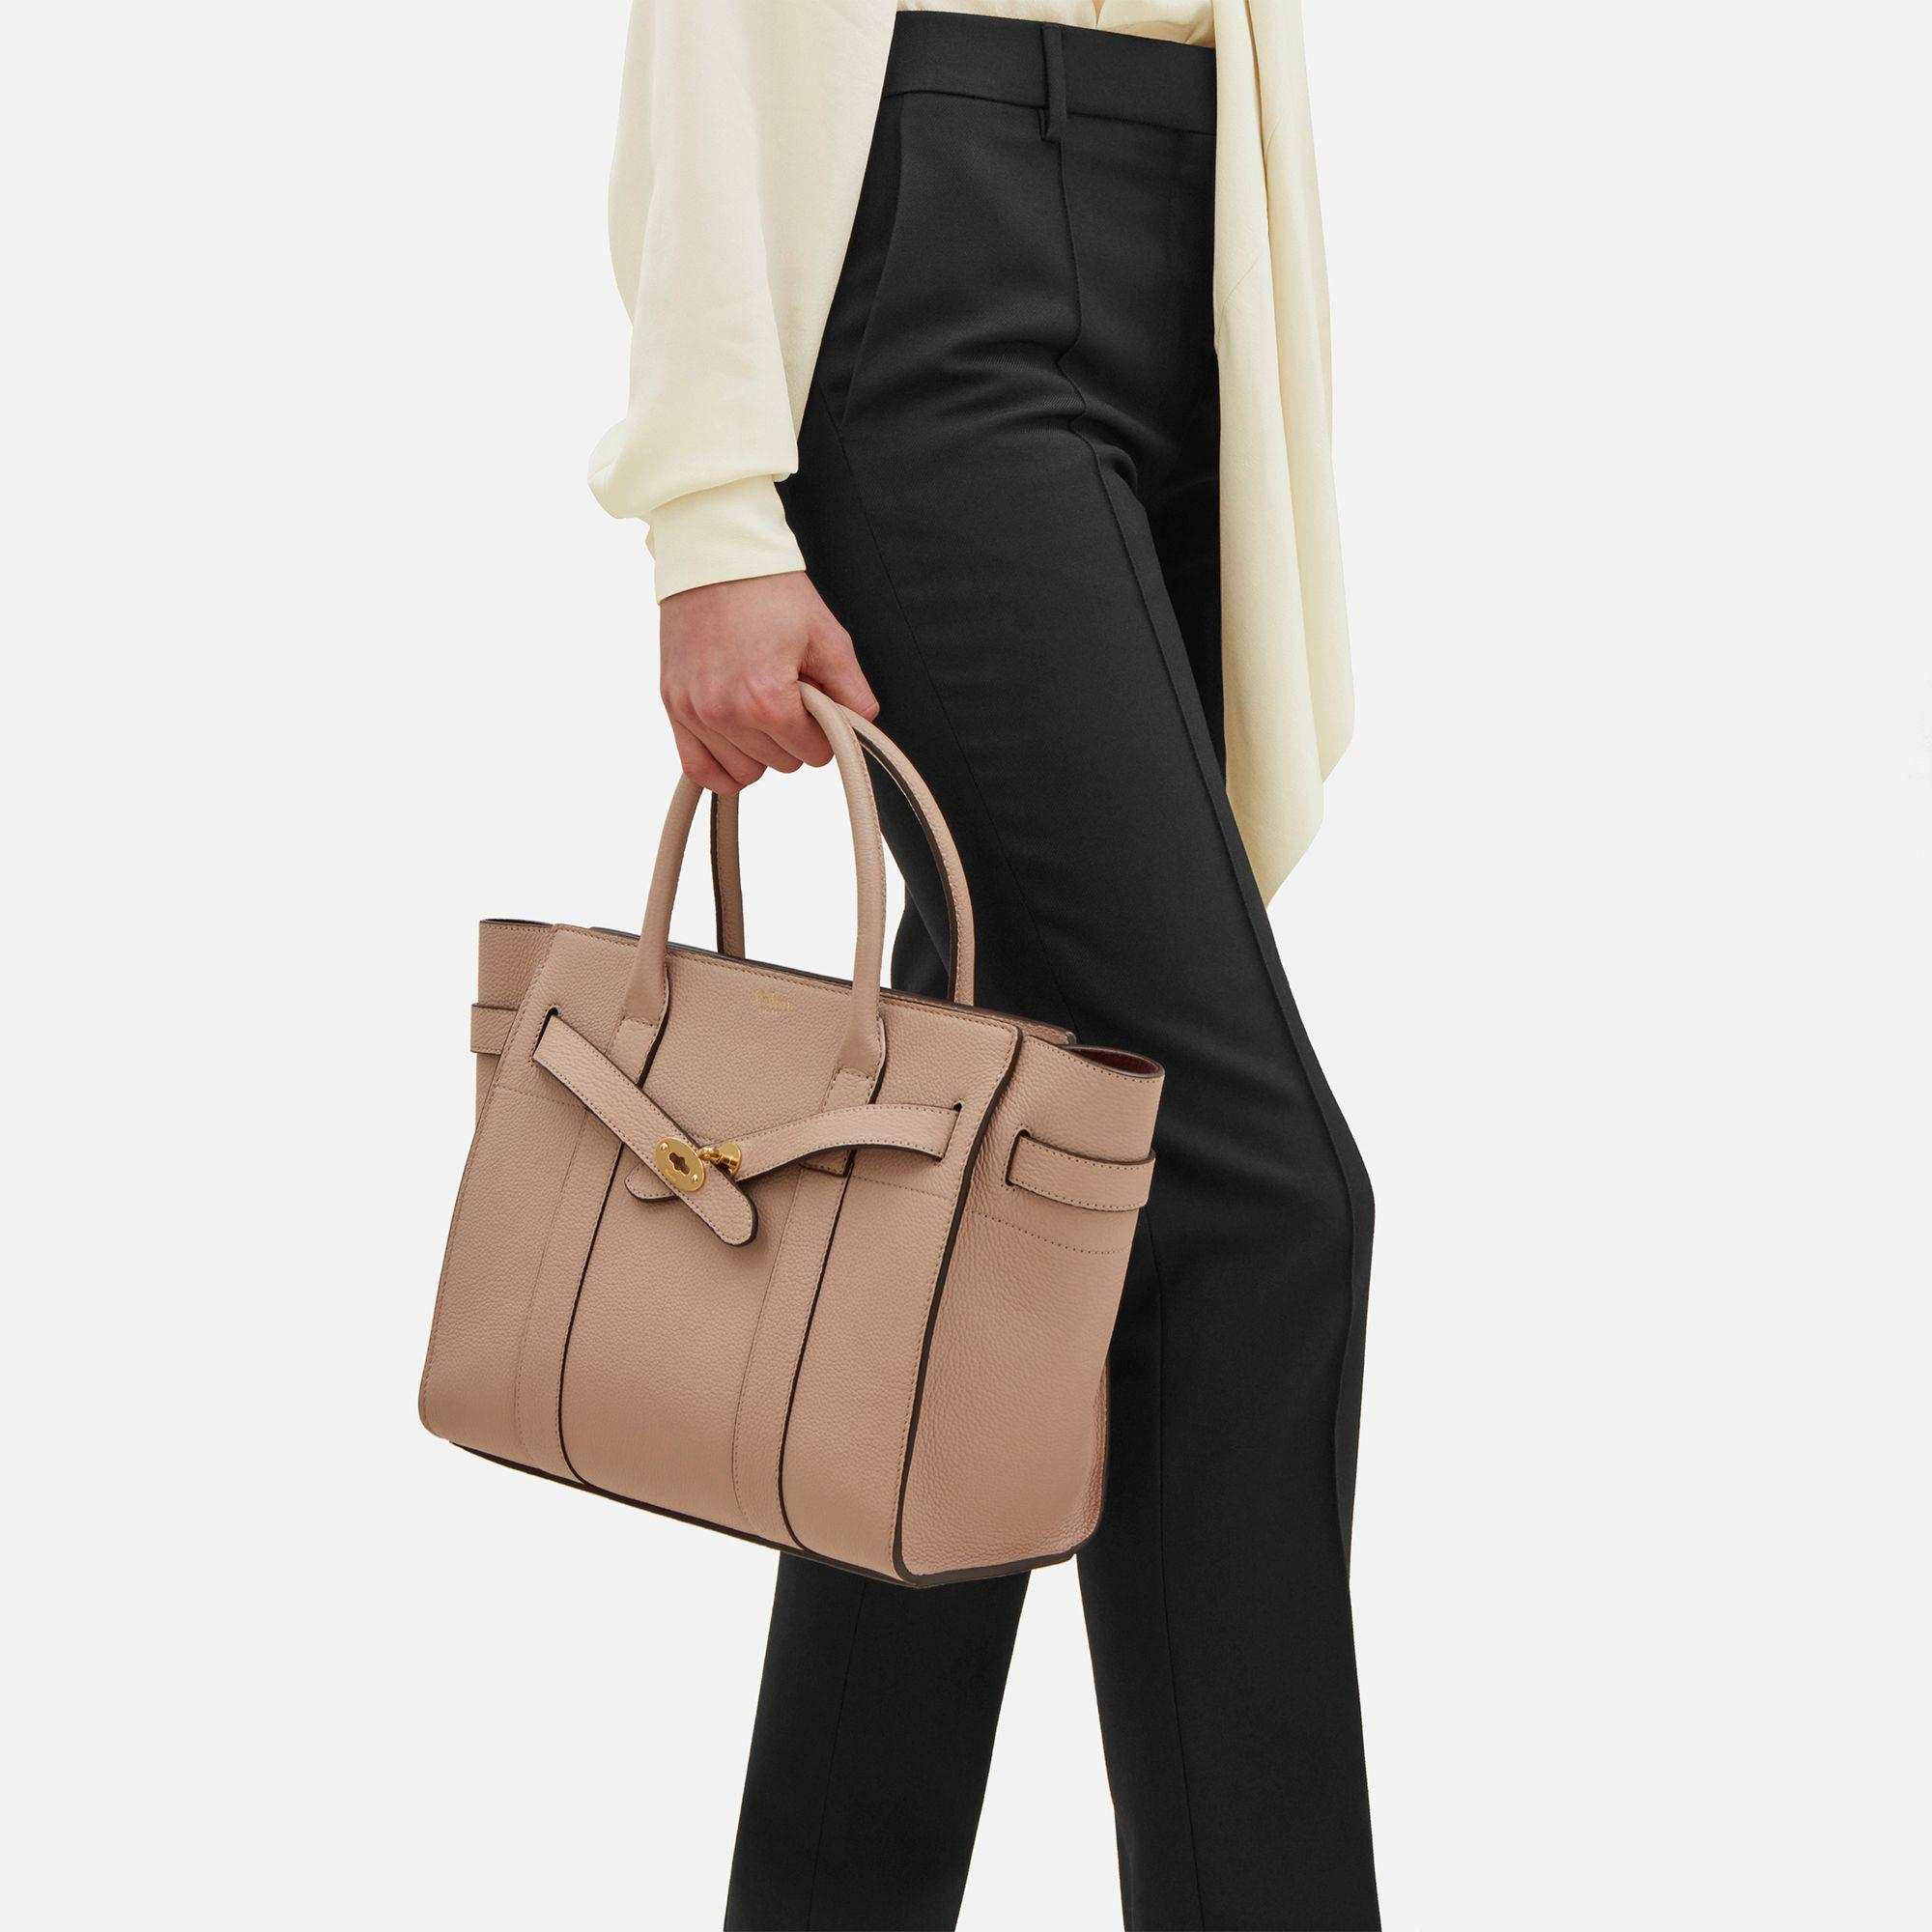 c4edaf8aaaf4 ... uk mulberry multicolor small zipped bayswater lyst. view fullscreen  9126a 5febc